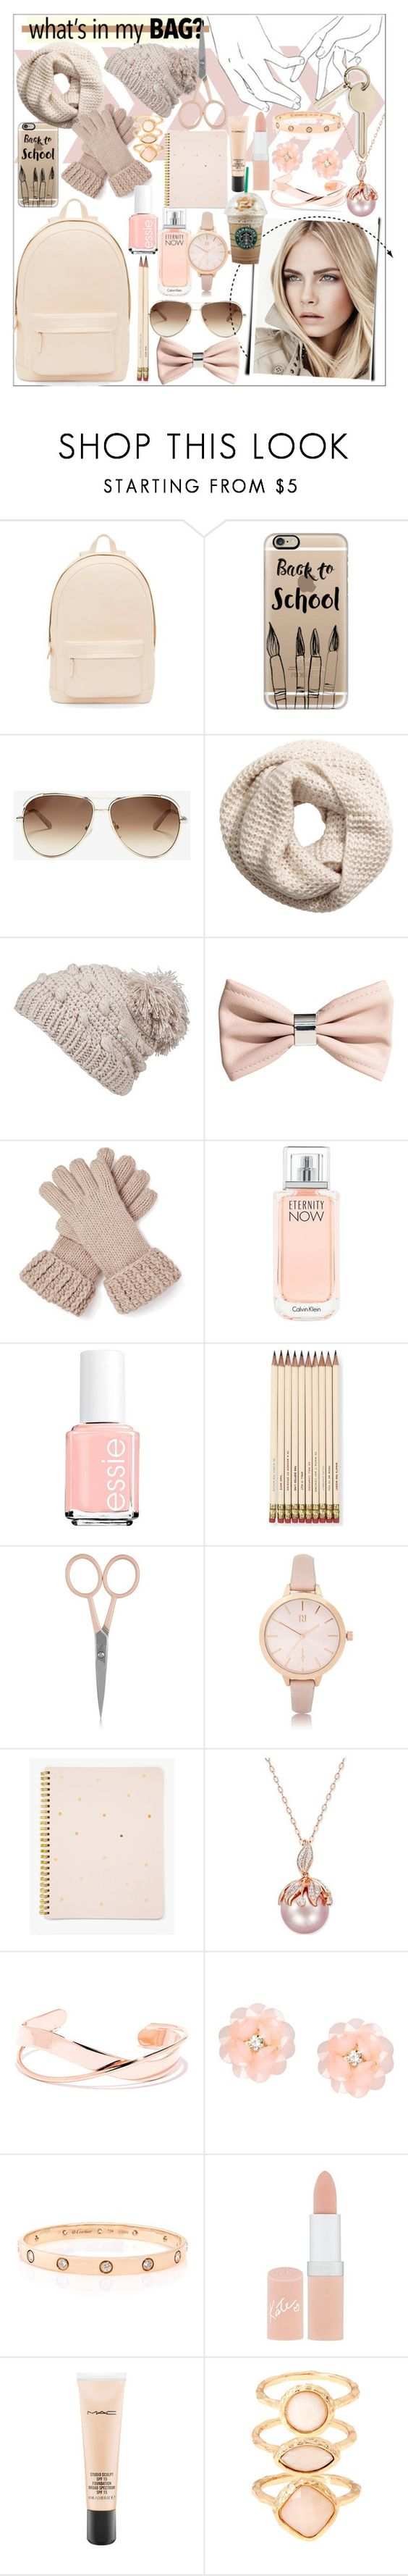 """Whats in my bag"" by elise2571 ❤ liked on Polyvore featuring PB 0110, Casetify, Chloé, H&M, prAna, Calvin Klein, Essie, Kate Spade, Anastasia Beverly Hills and River Island"